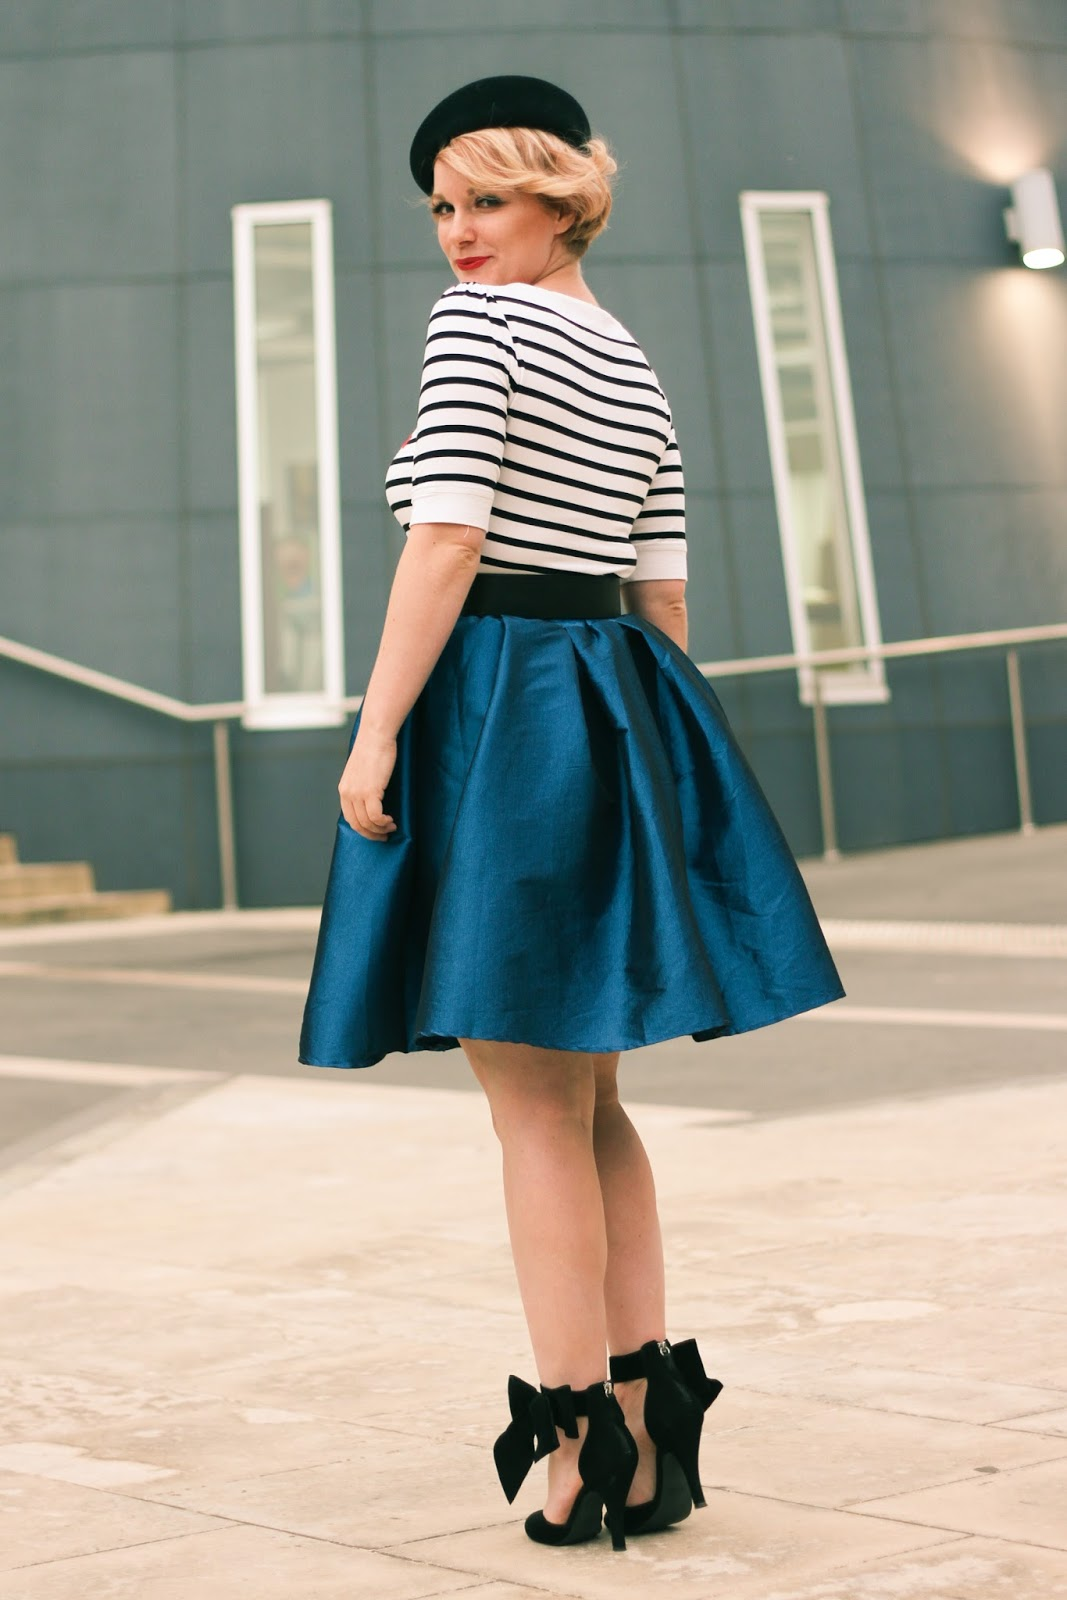 Finding Femme in Review Australia La Dolce Vita striped top, Alannah Hill belt, blue a-line Chicwish midi skirt and black Modcloth heels with bows.